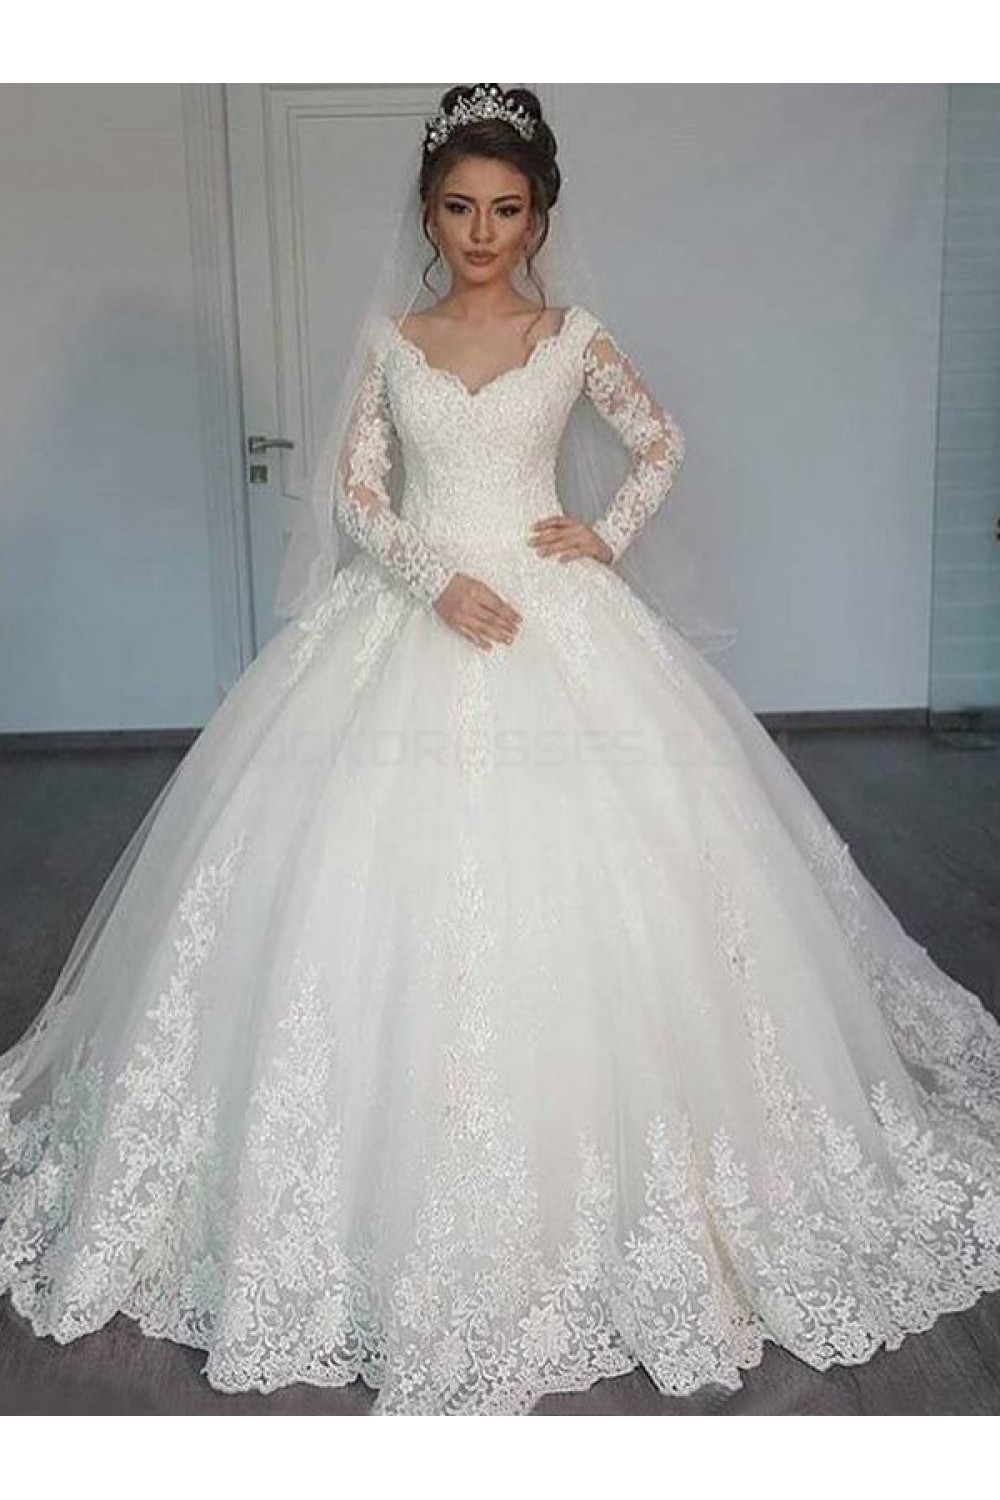 09f22a9a74e5e Bridal Ball Gown V-Neck Lace Long Sleeves Wedding Dresses Bridal ...